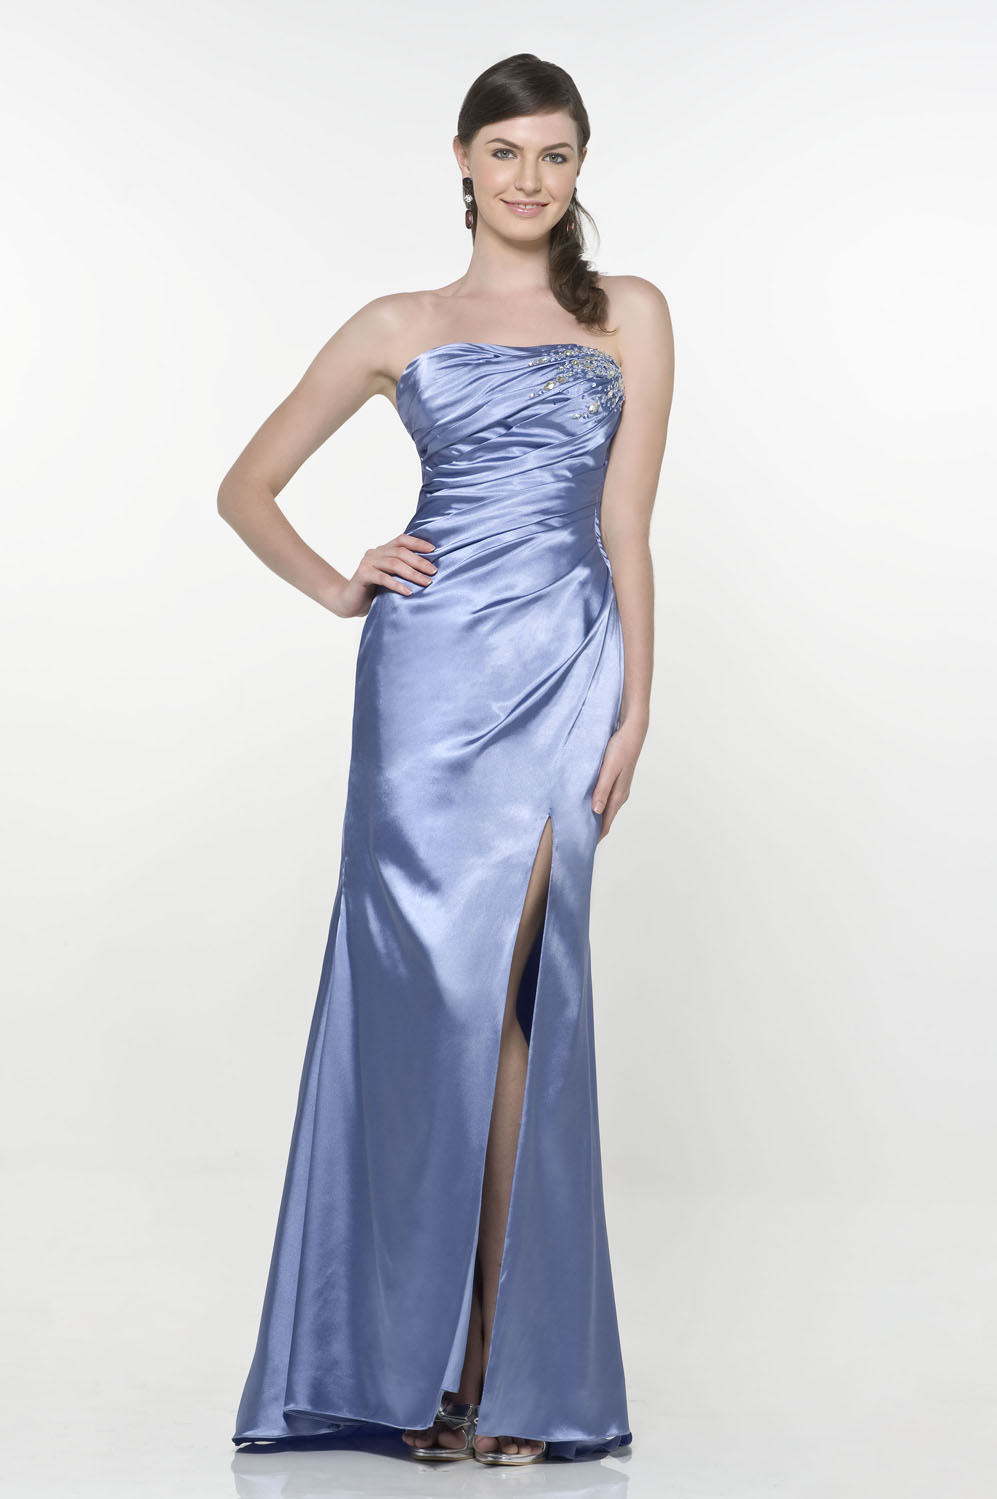 Satin Gown | Dressed Up Girl